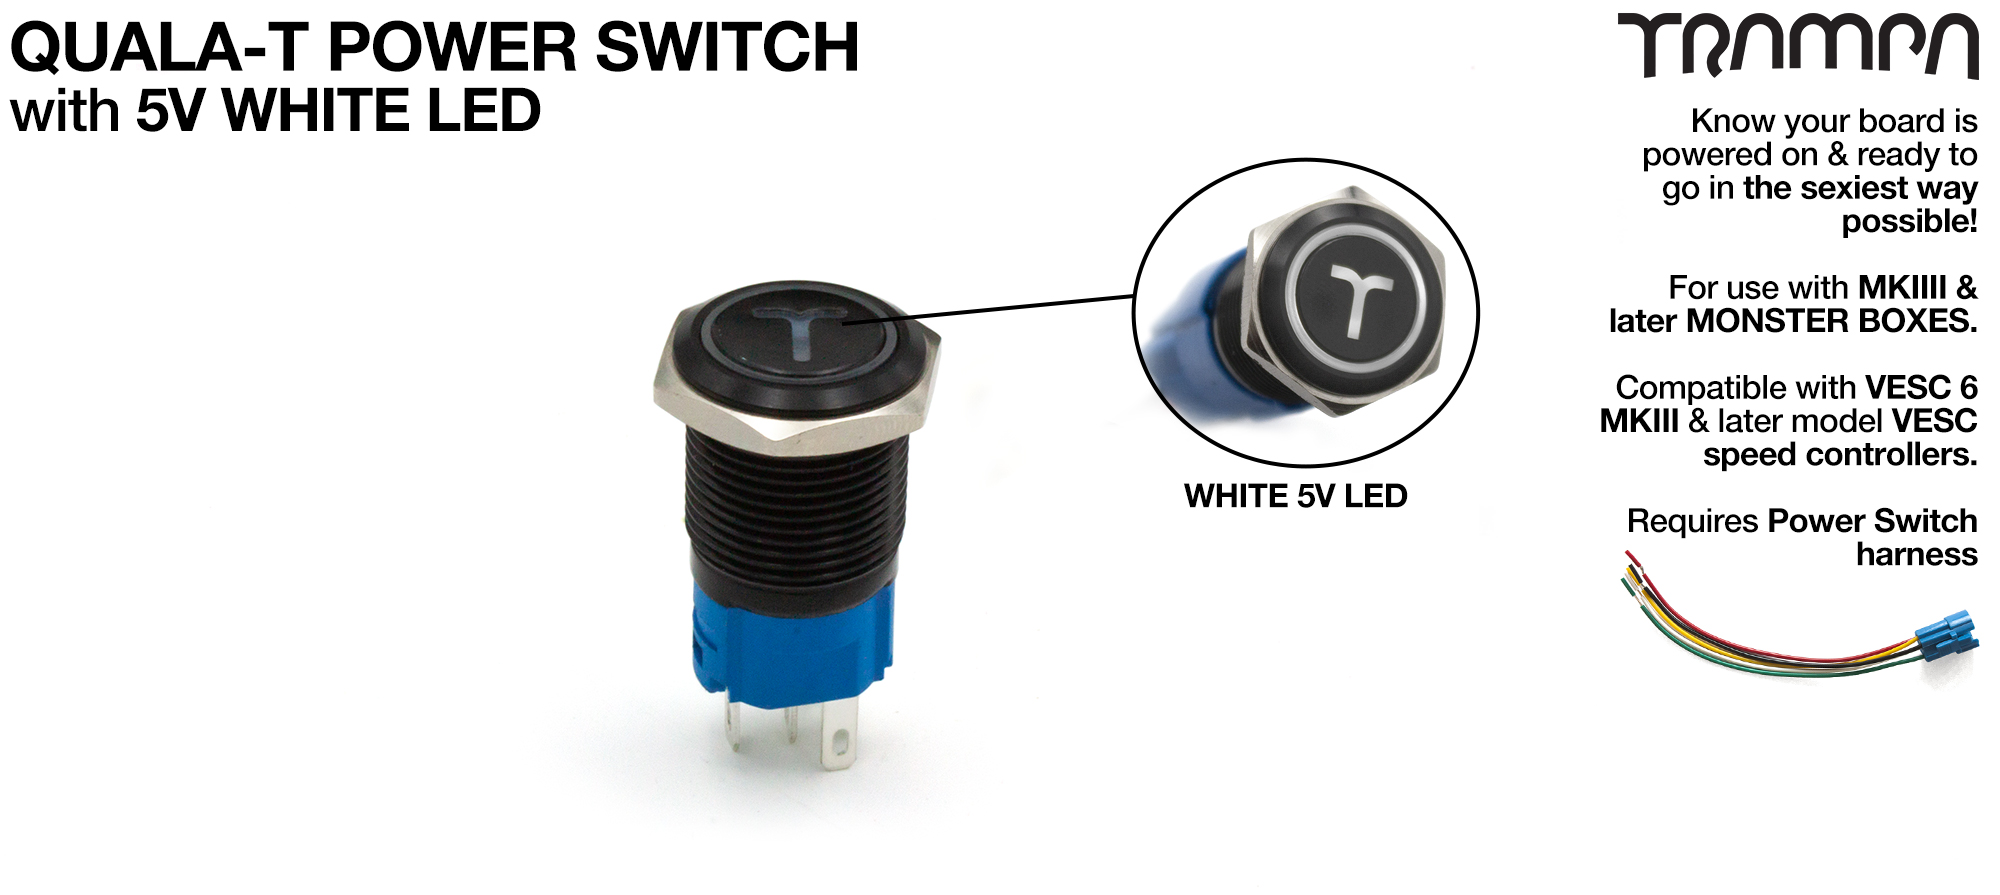 TRAMPA Switch with 5V WHITE LED QUALA-T logo & 16mm Stainless Steel Fixing Nut